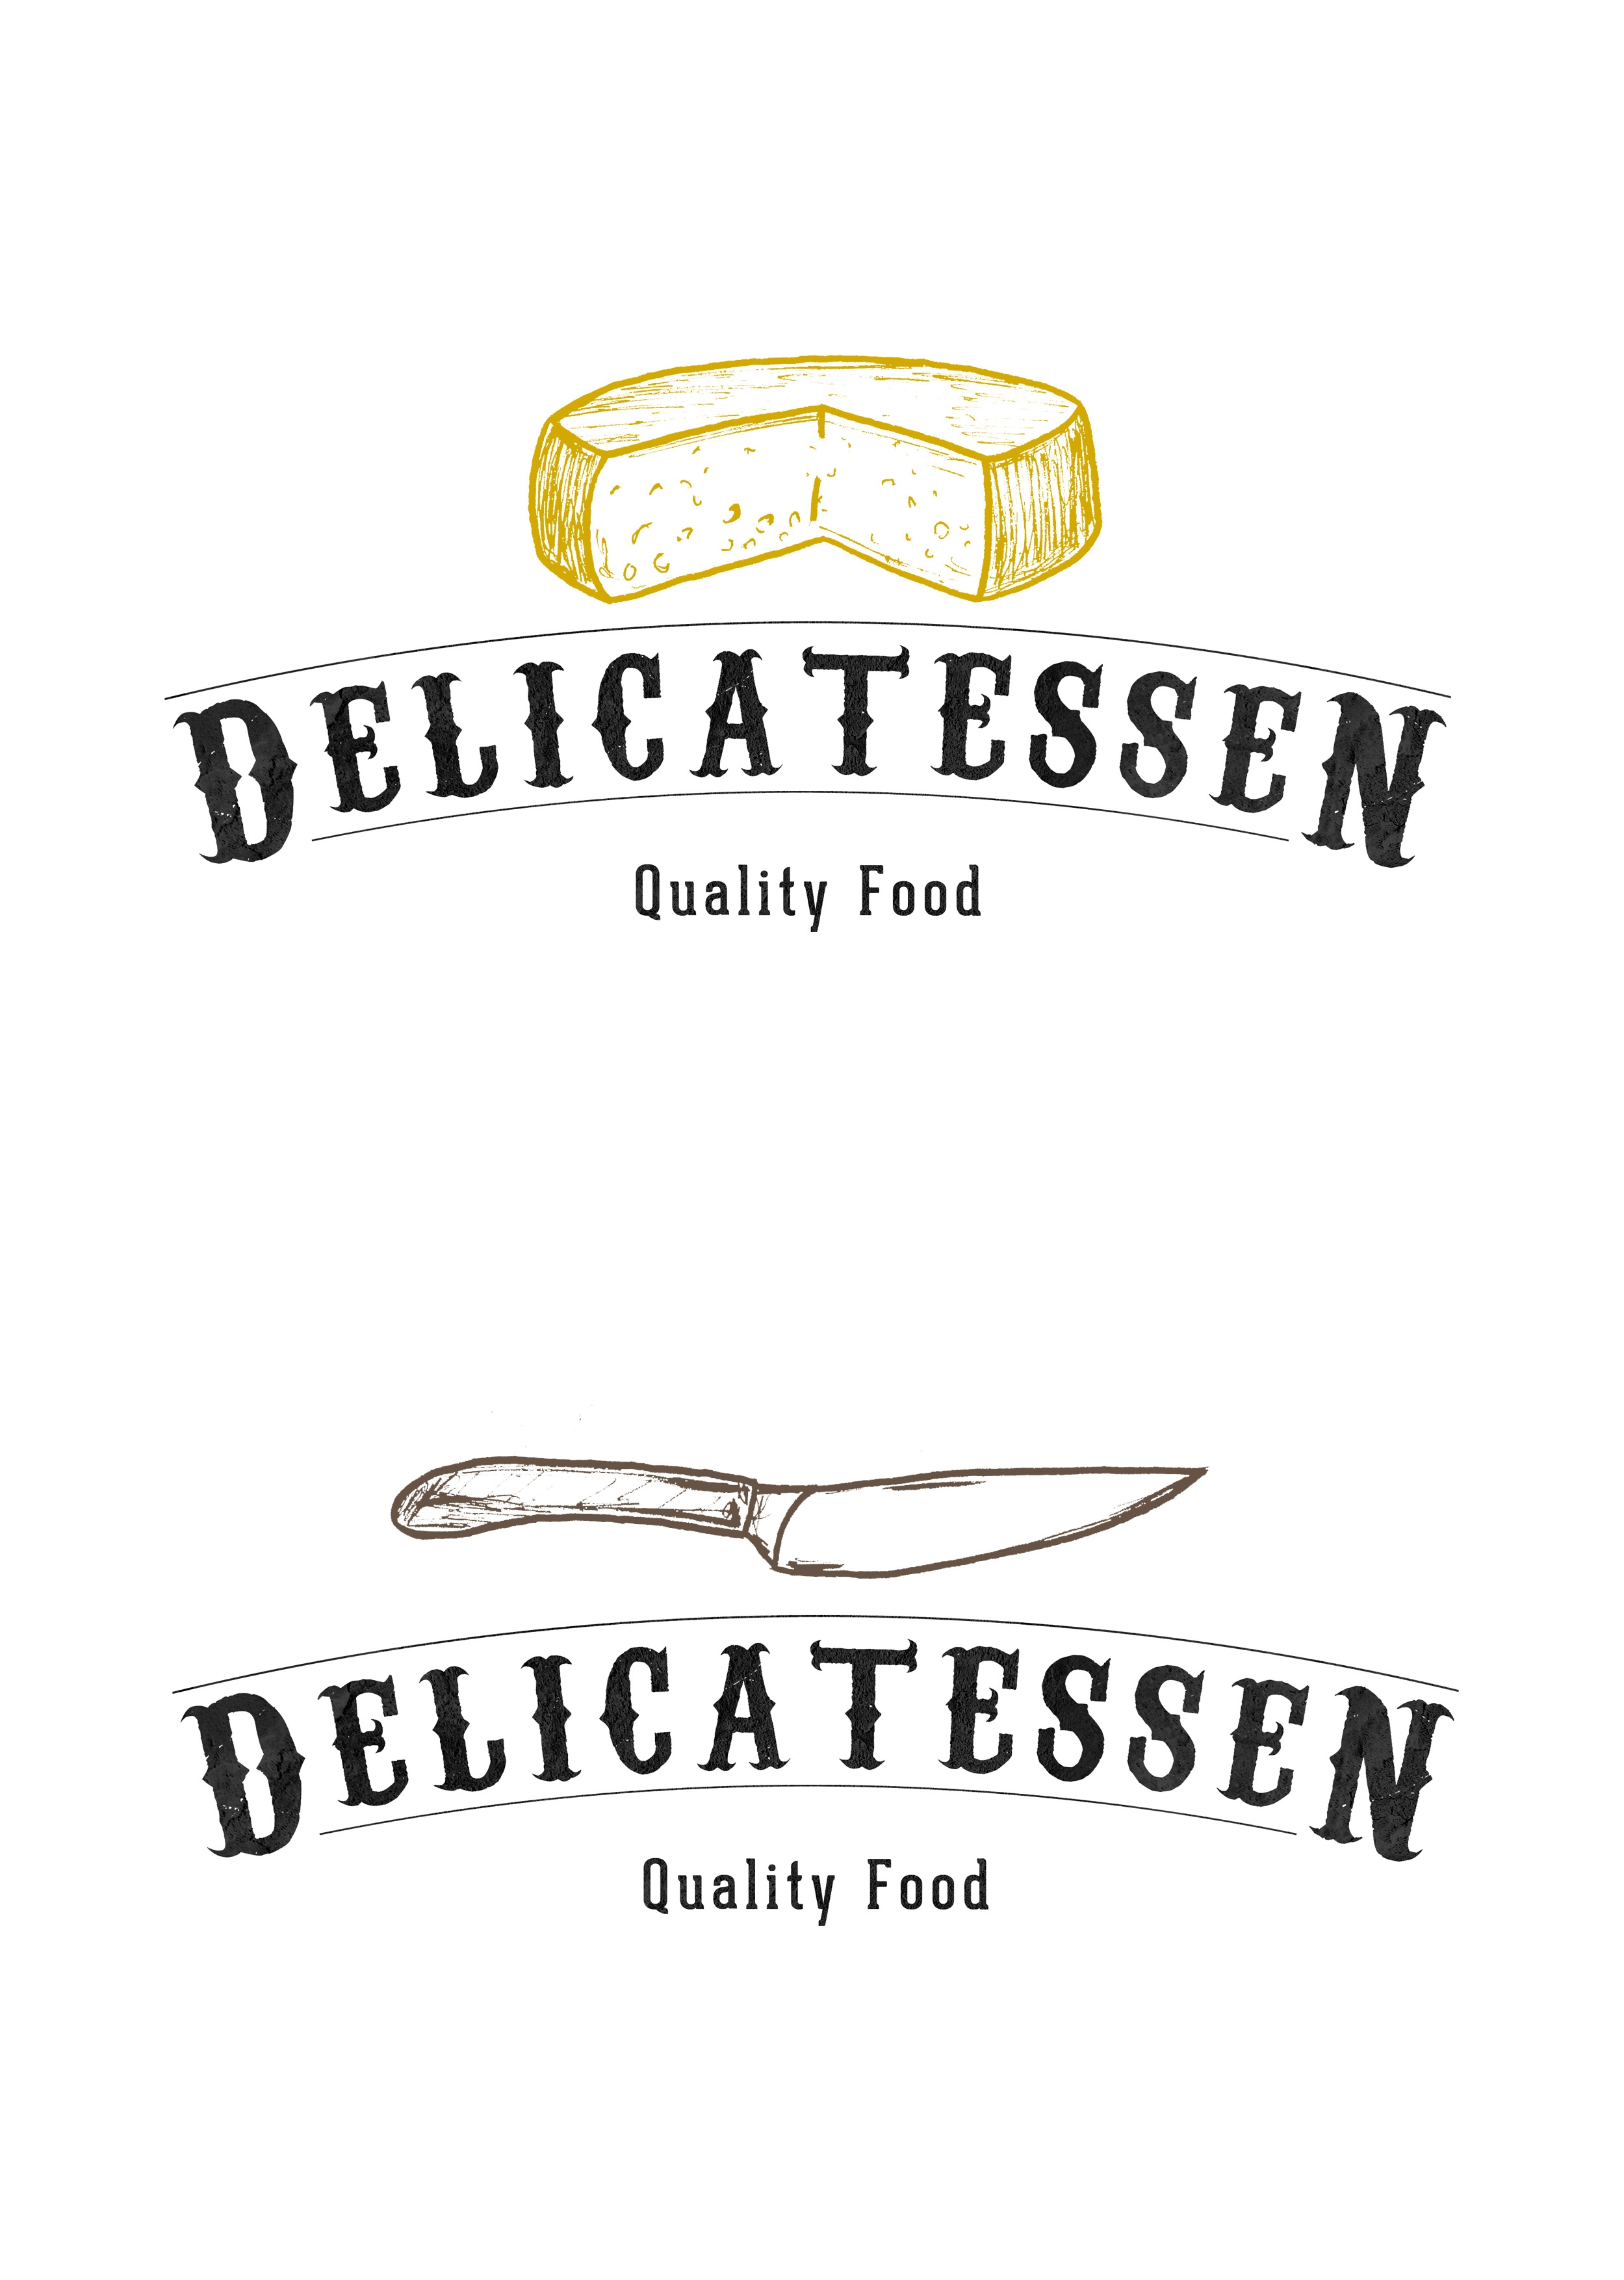 Delicatessen butcher illustration from portugal